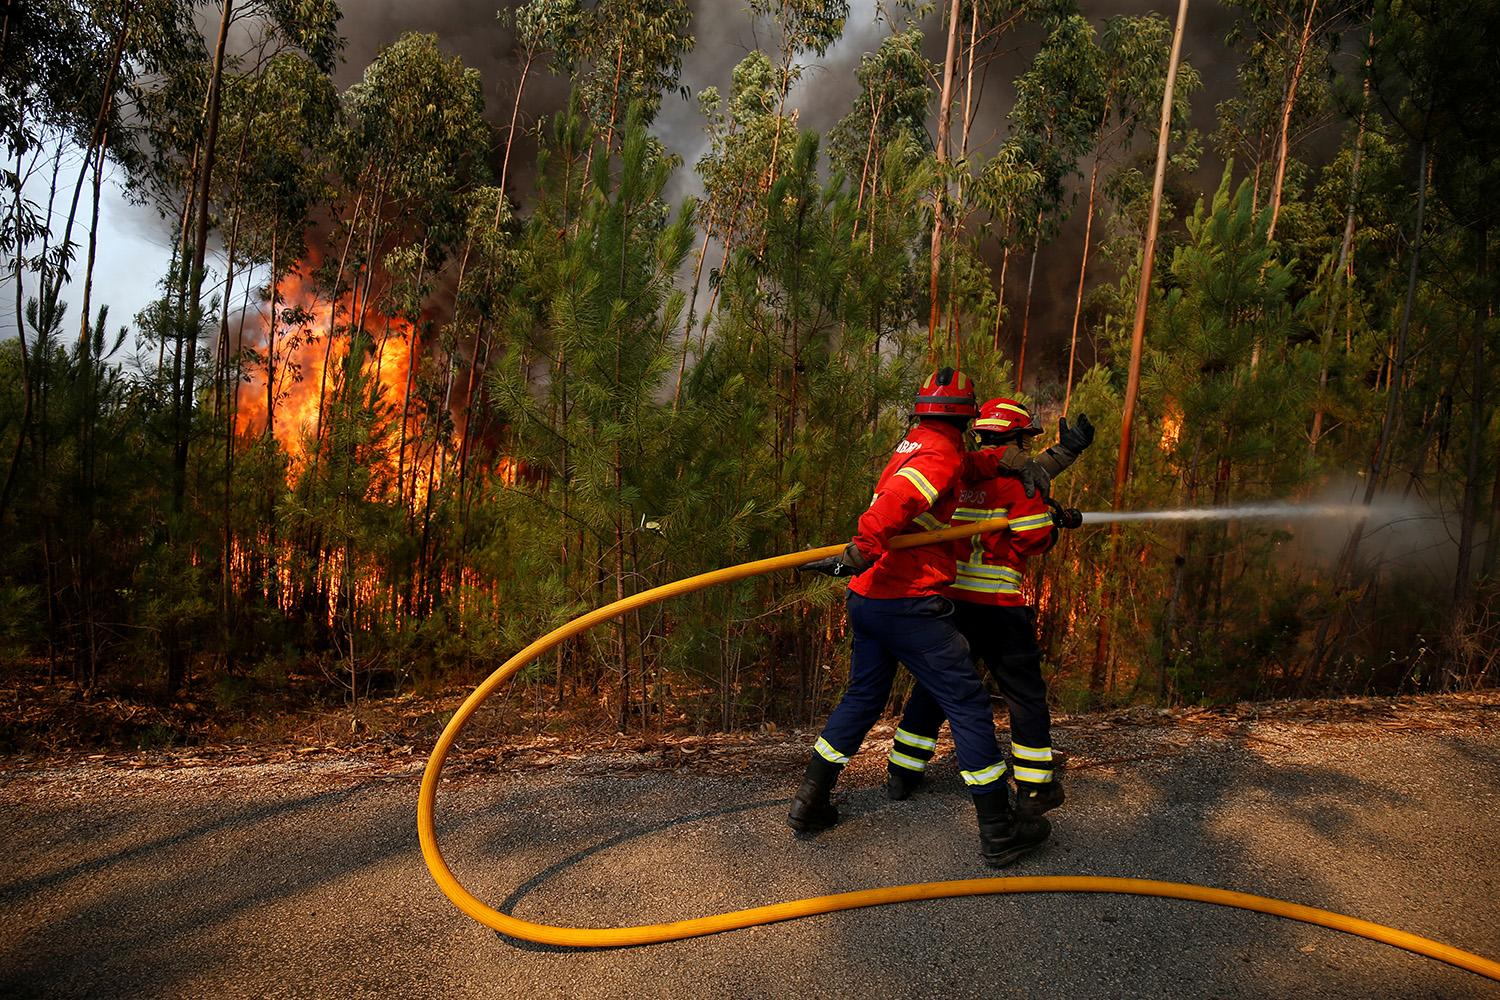 <p>Firefighters work to put out a forest fire next to the village of Macao, near Castelo Branco, Portugal, July 26, 2017. (Rafael Marchante/Reuters) </p>